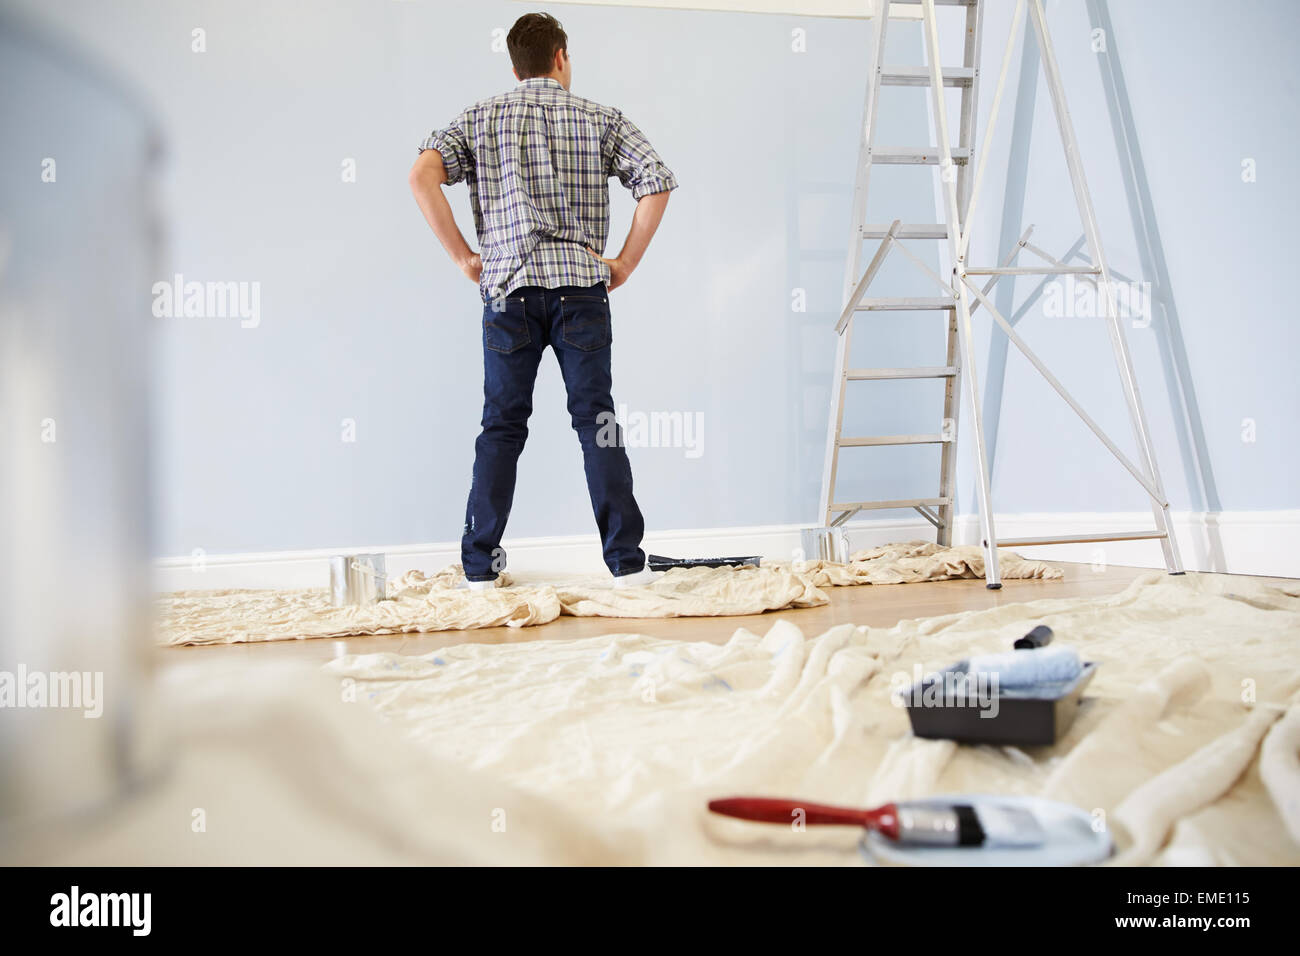 Man Decorating Nursery For New Baby - Stock Image